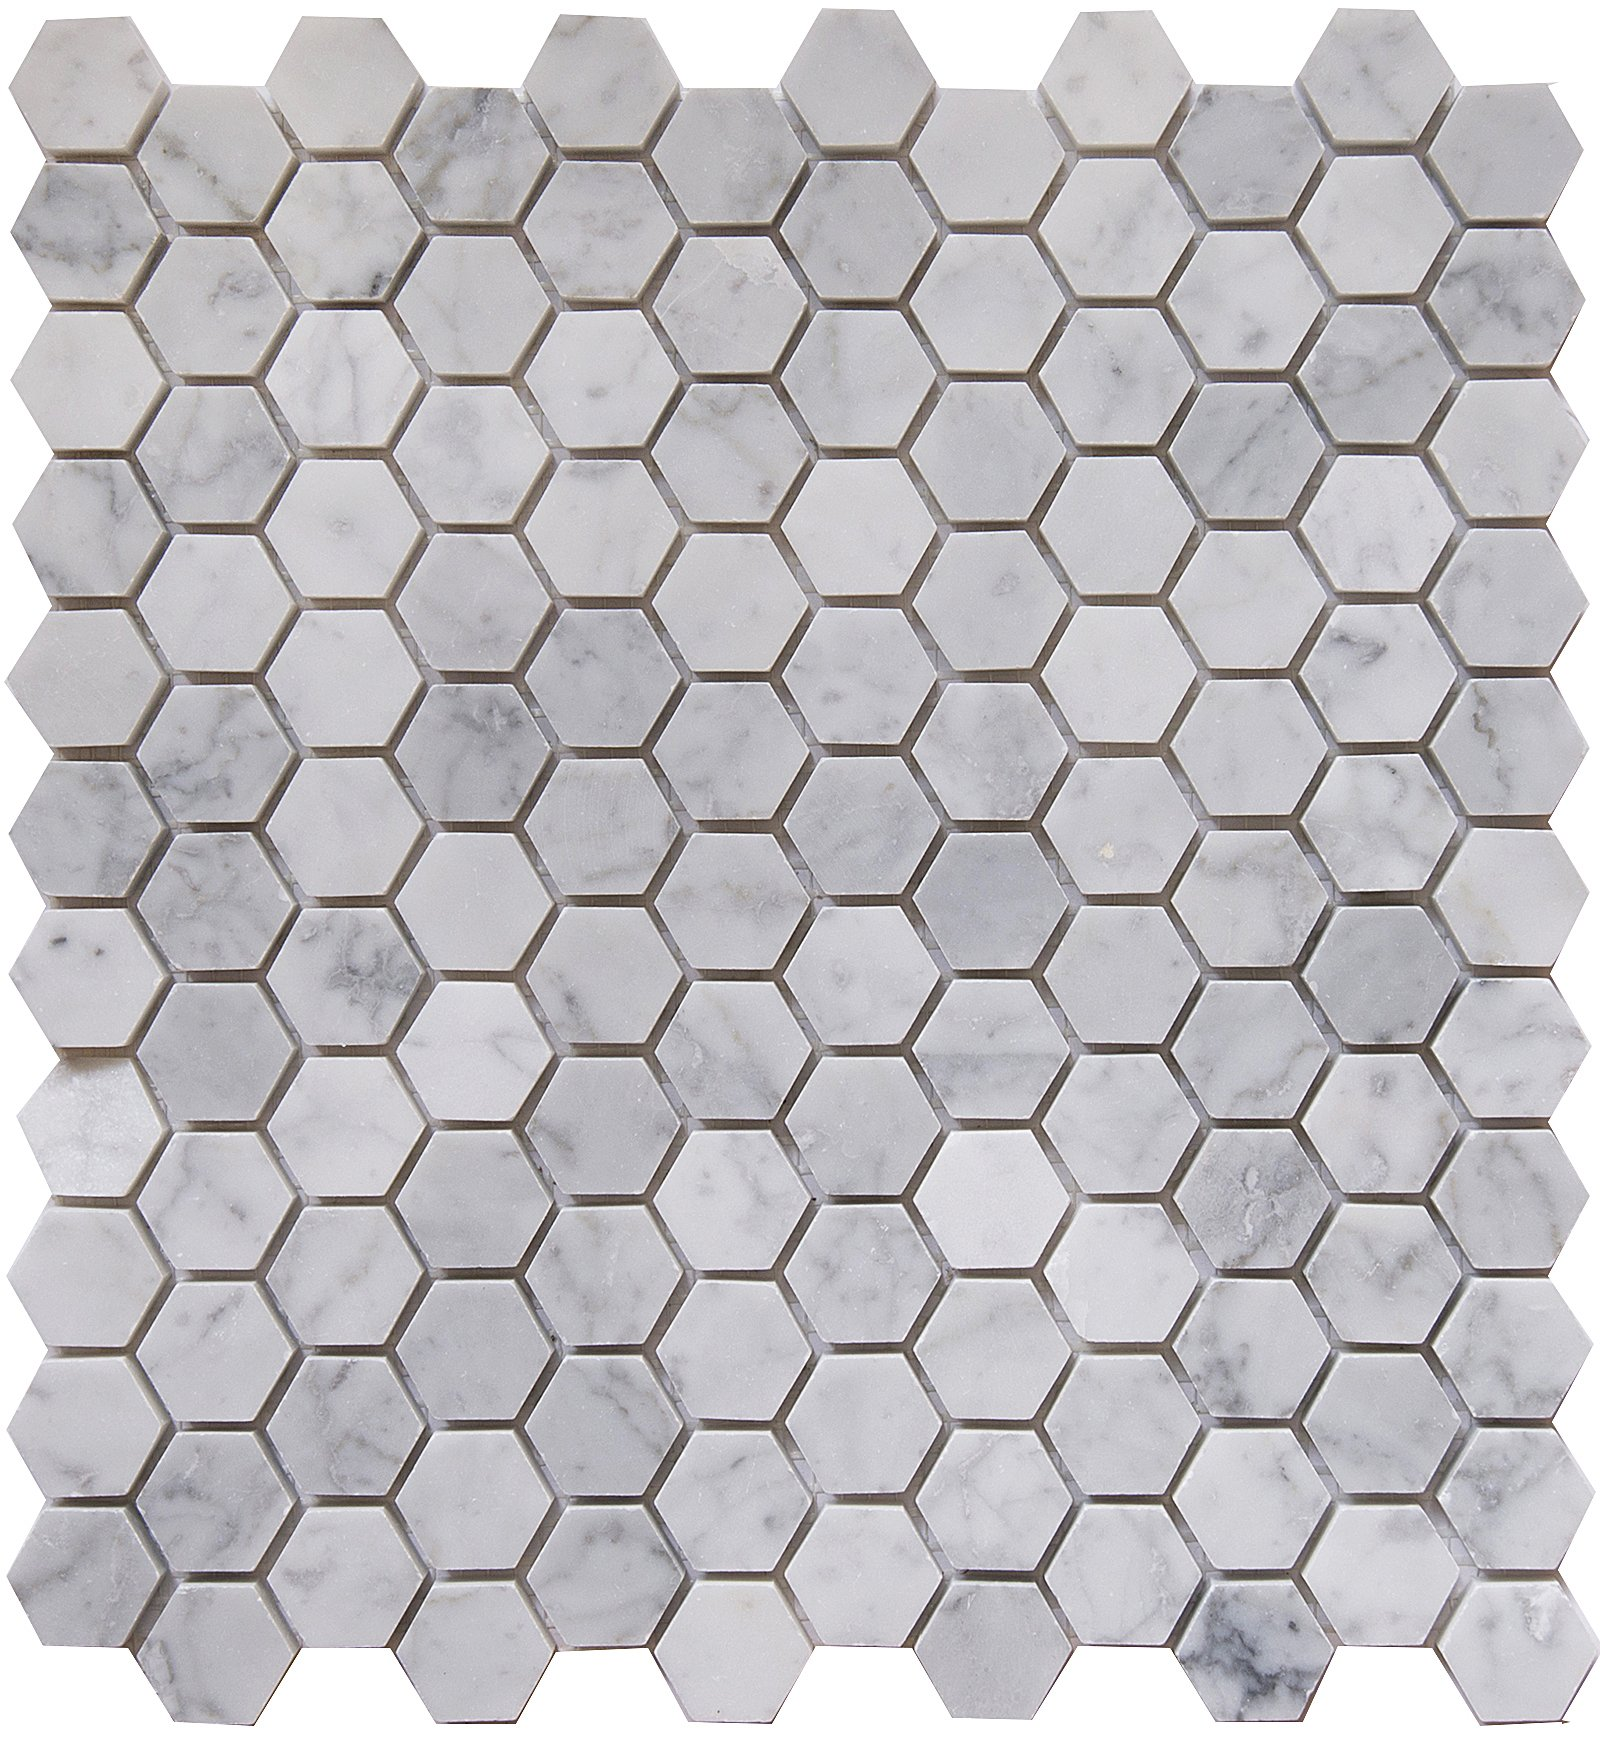 Carrara White Marble Mosaic Tile, CWMM1HEX, Chip Size 1'' Hexagon, 11-1/2''X11 X3/8'', Polished (Box of 5 Sheets)